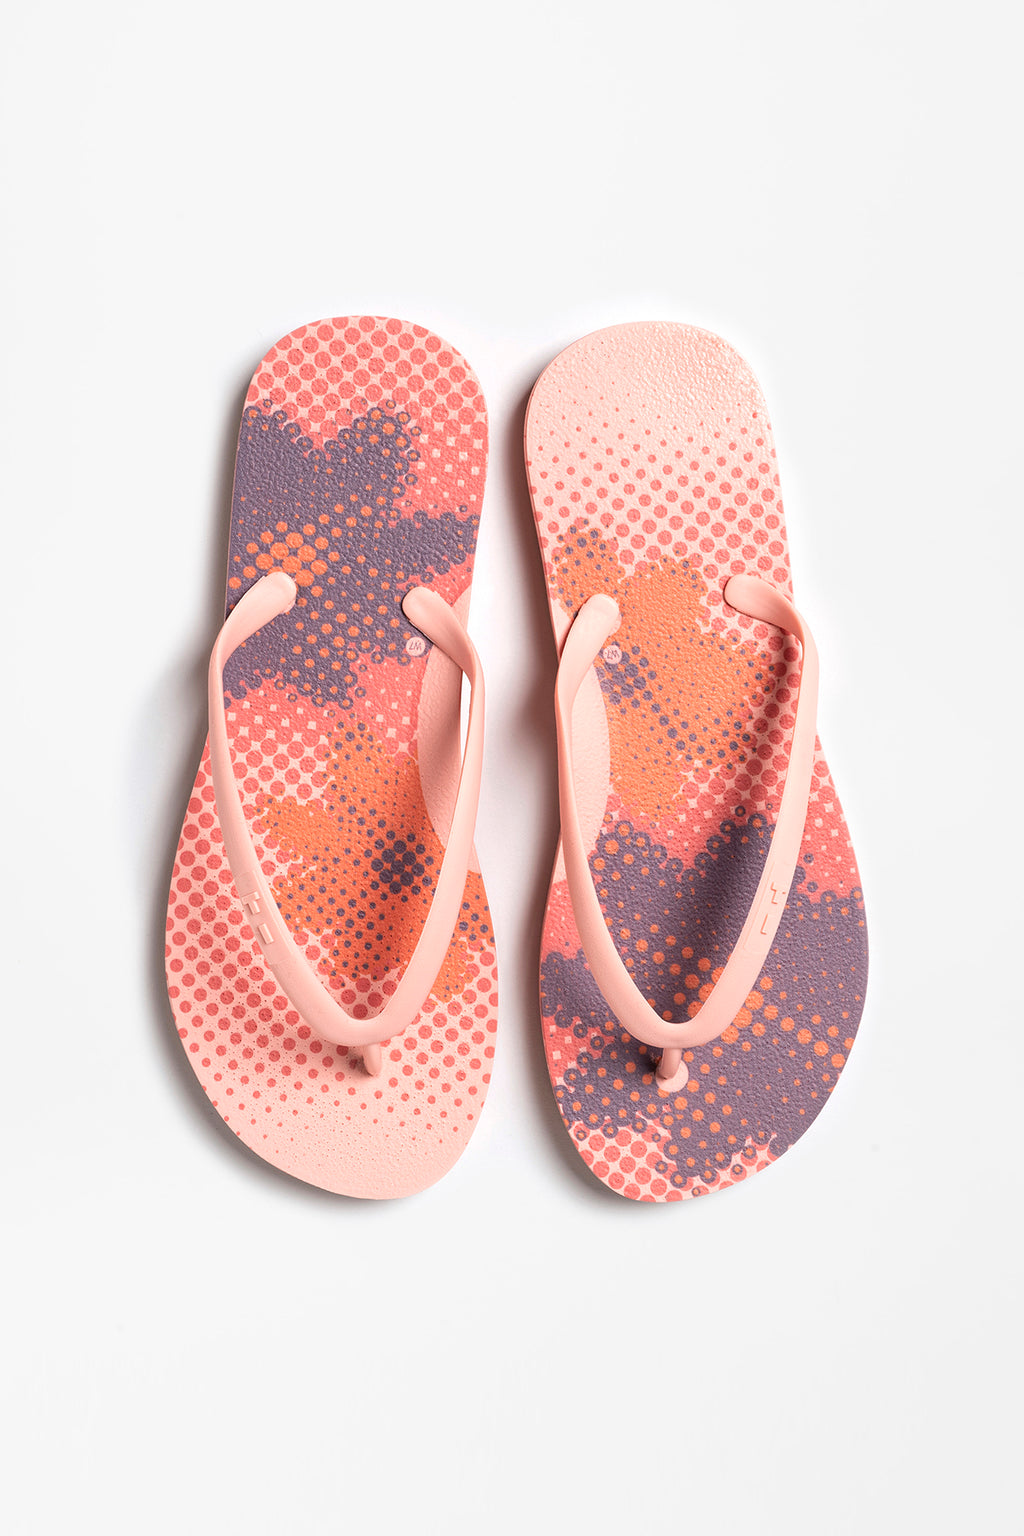 Women's flip flops with flower pattern in blush pink